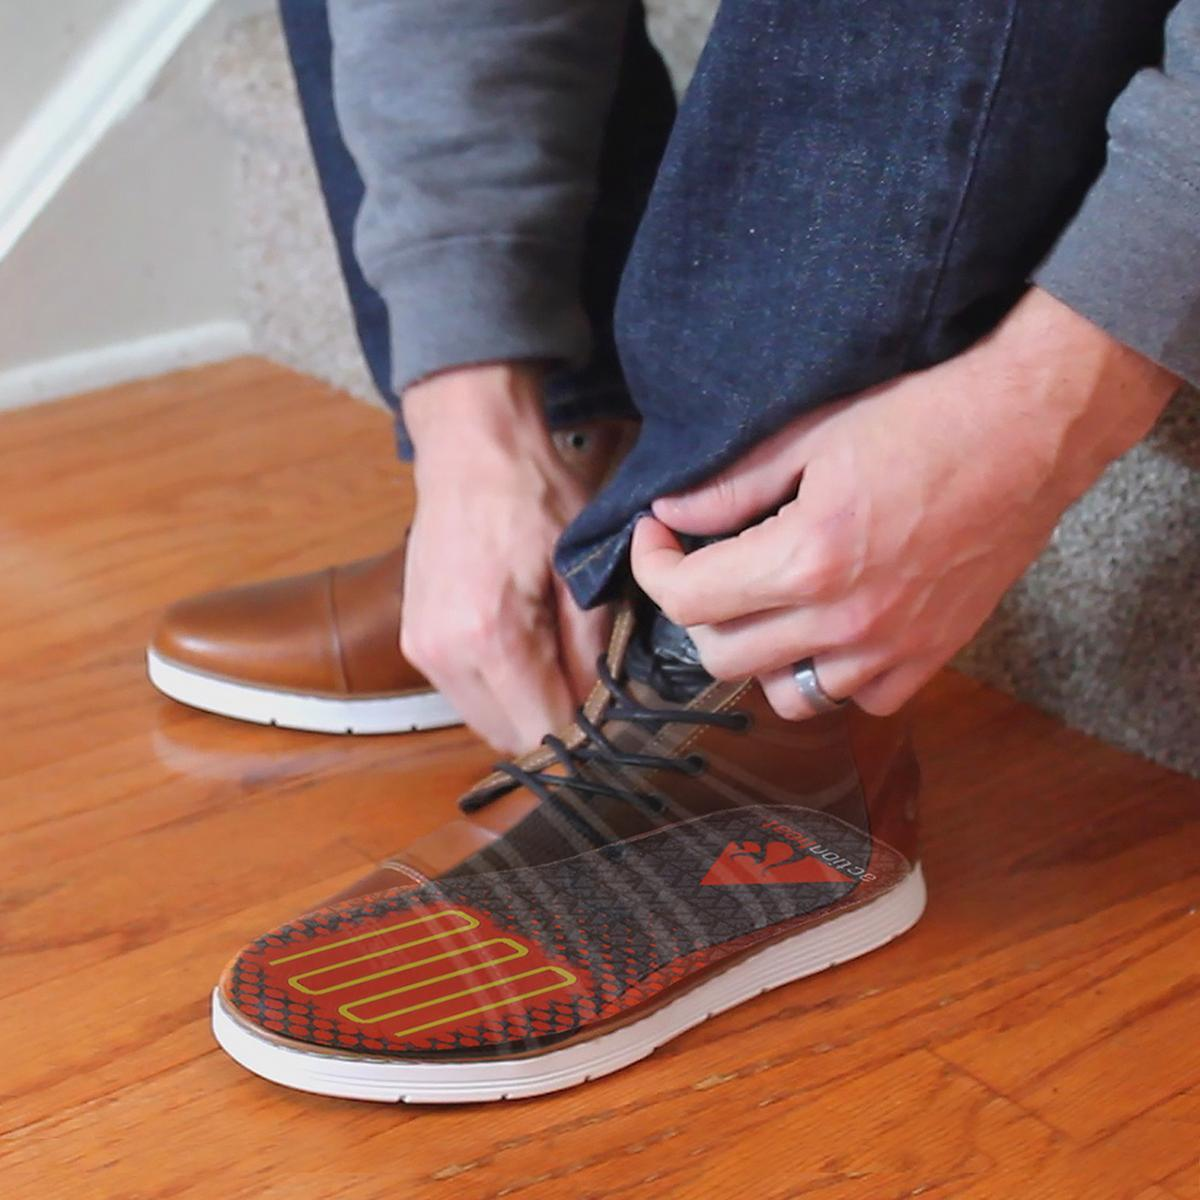 ActionHeat Rechargeable Heated Insoles with Remote - Size